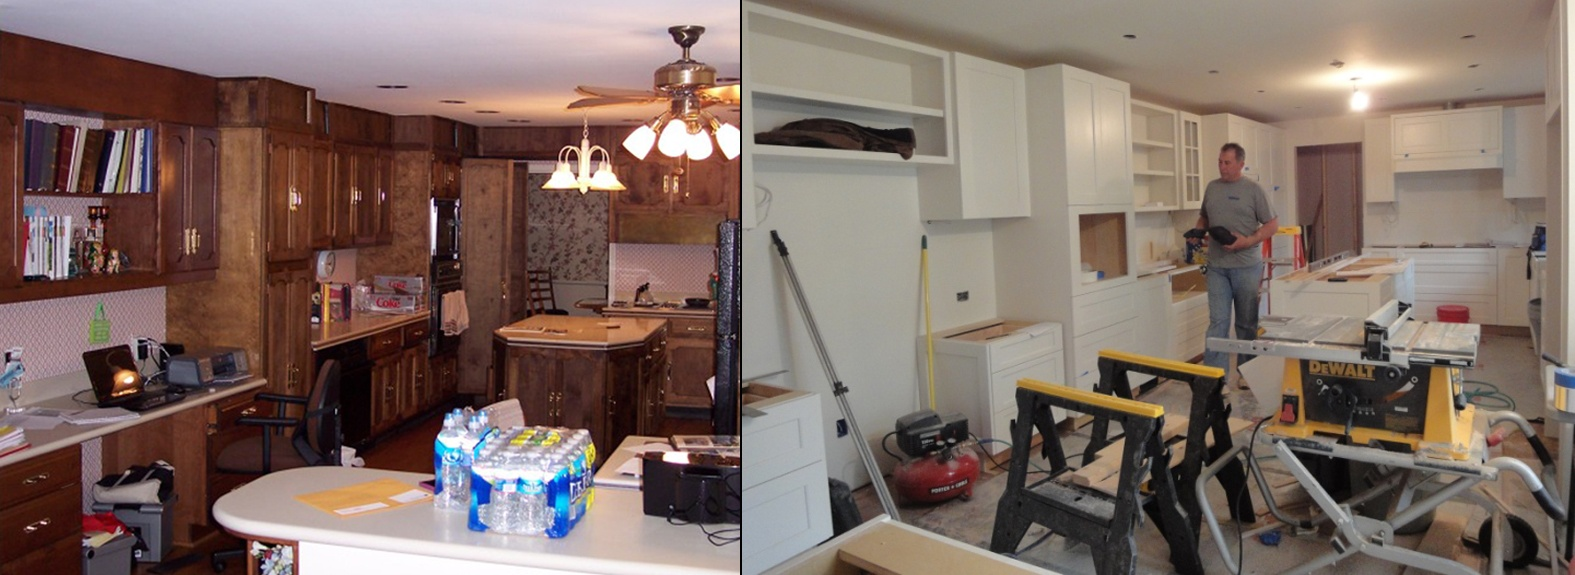 kitchen design BEFORE and AFTER